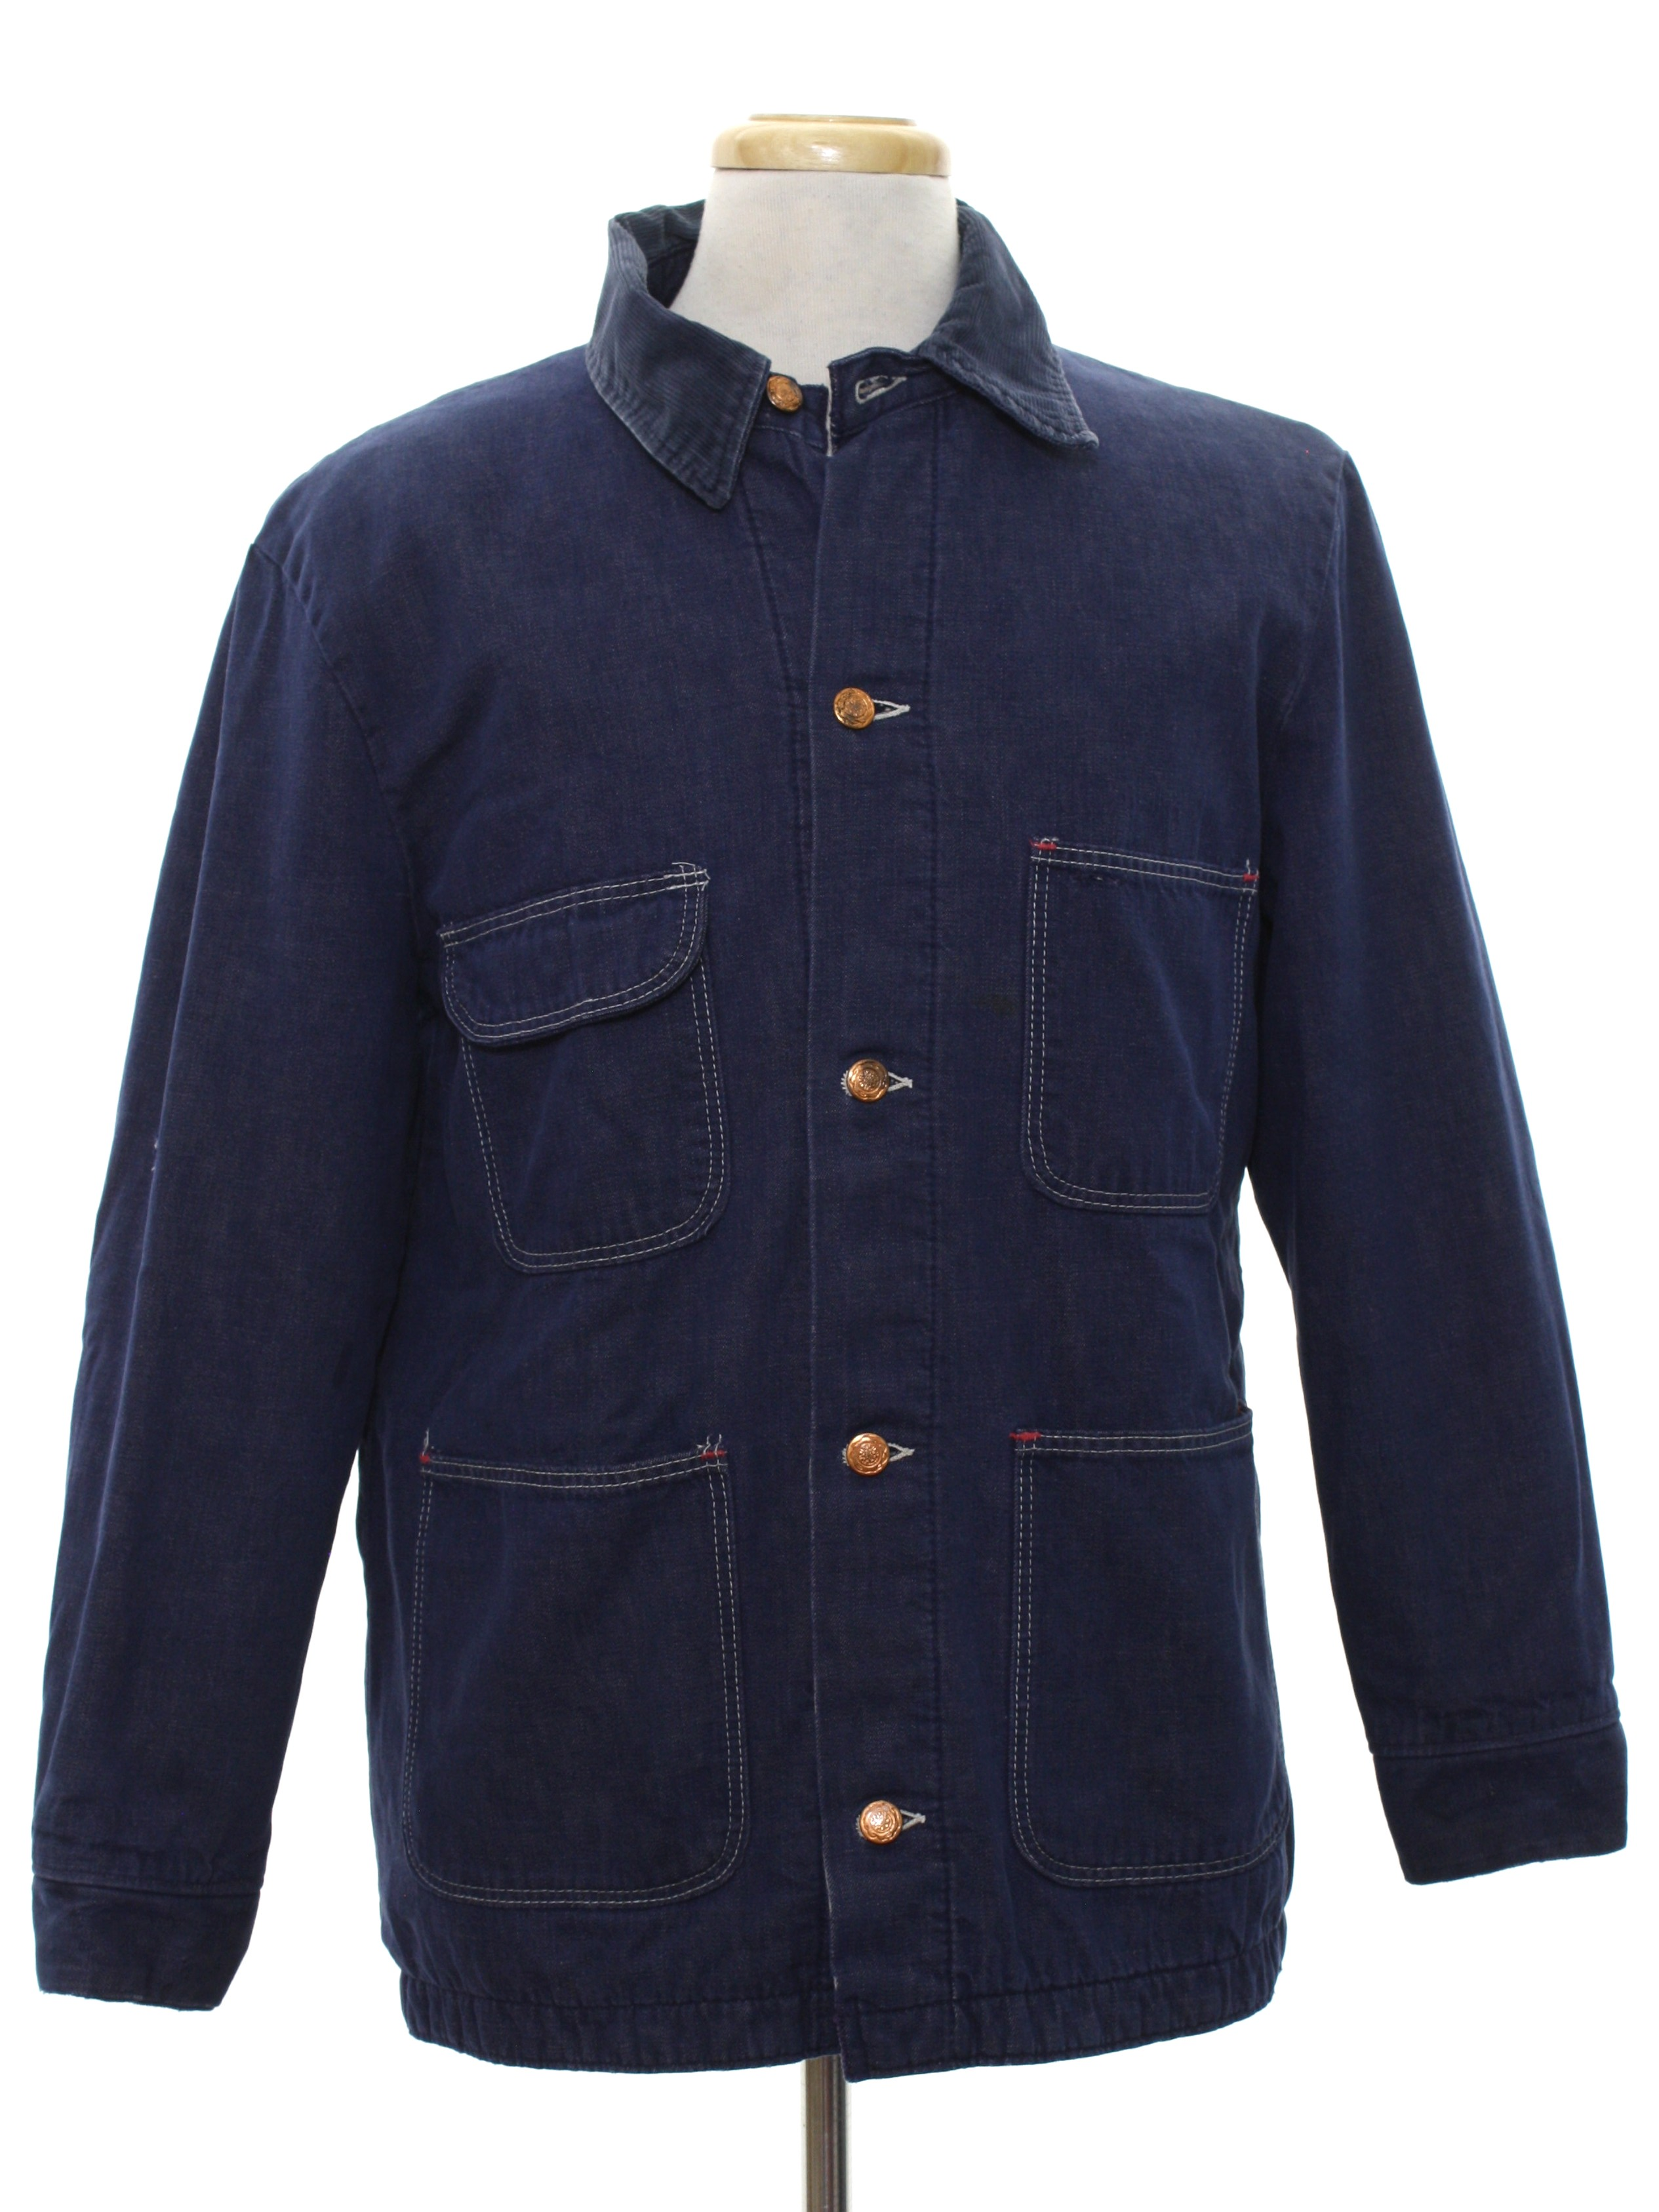 34a1eb6b8ad2a Blue Bell Inc. Eighties Vintage Jacket: 80s -Blue Bell Inc.- Mens ...